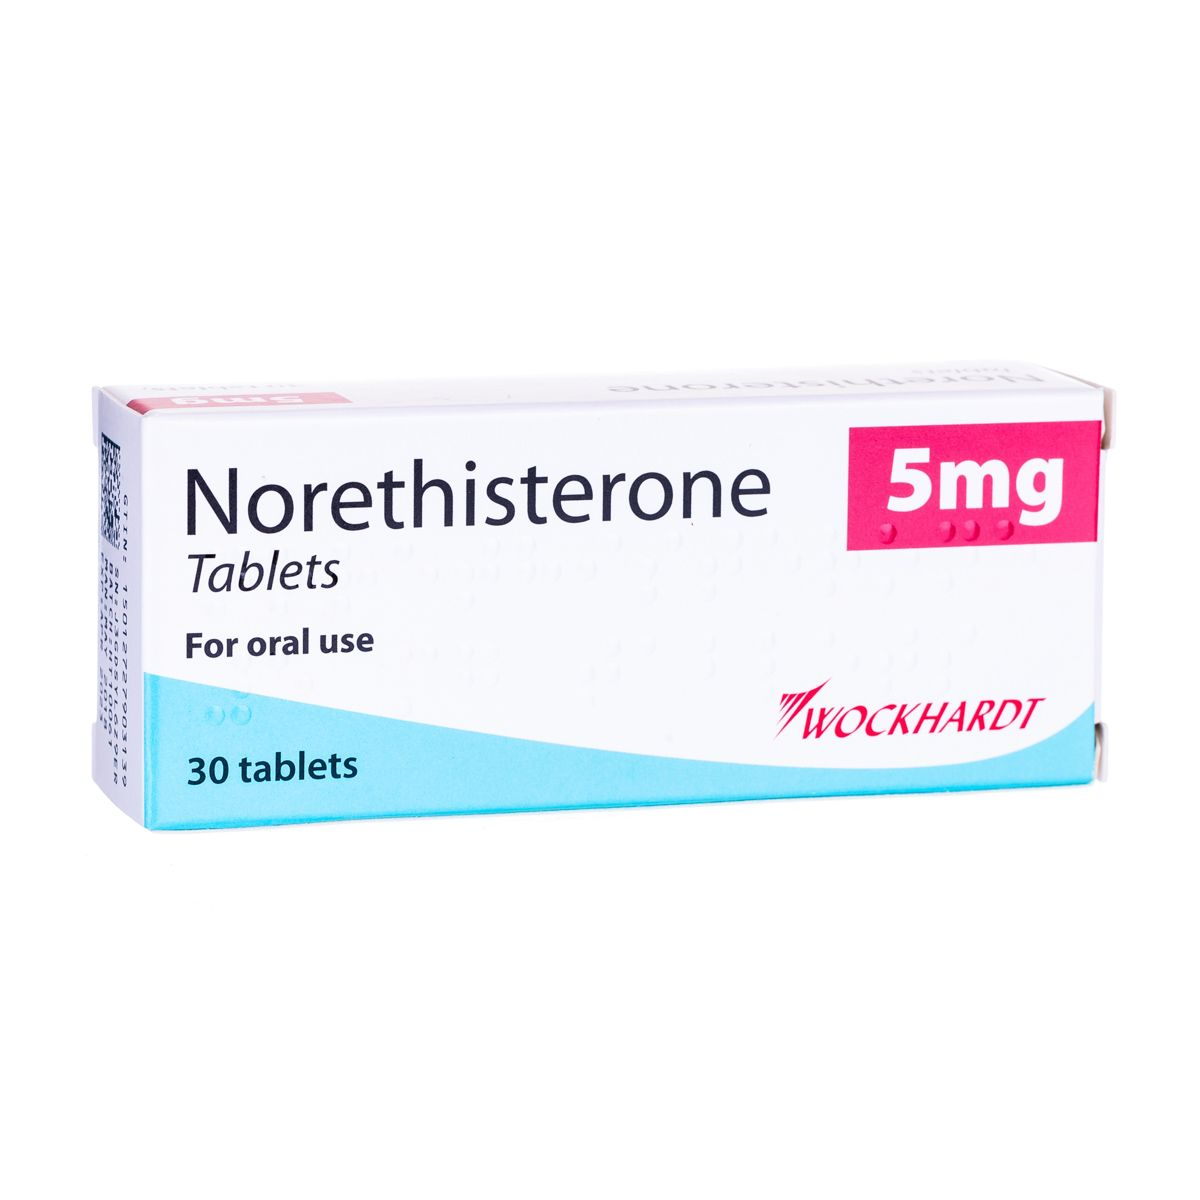 Norethisterone